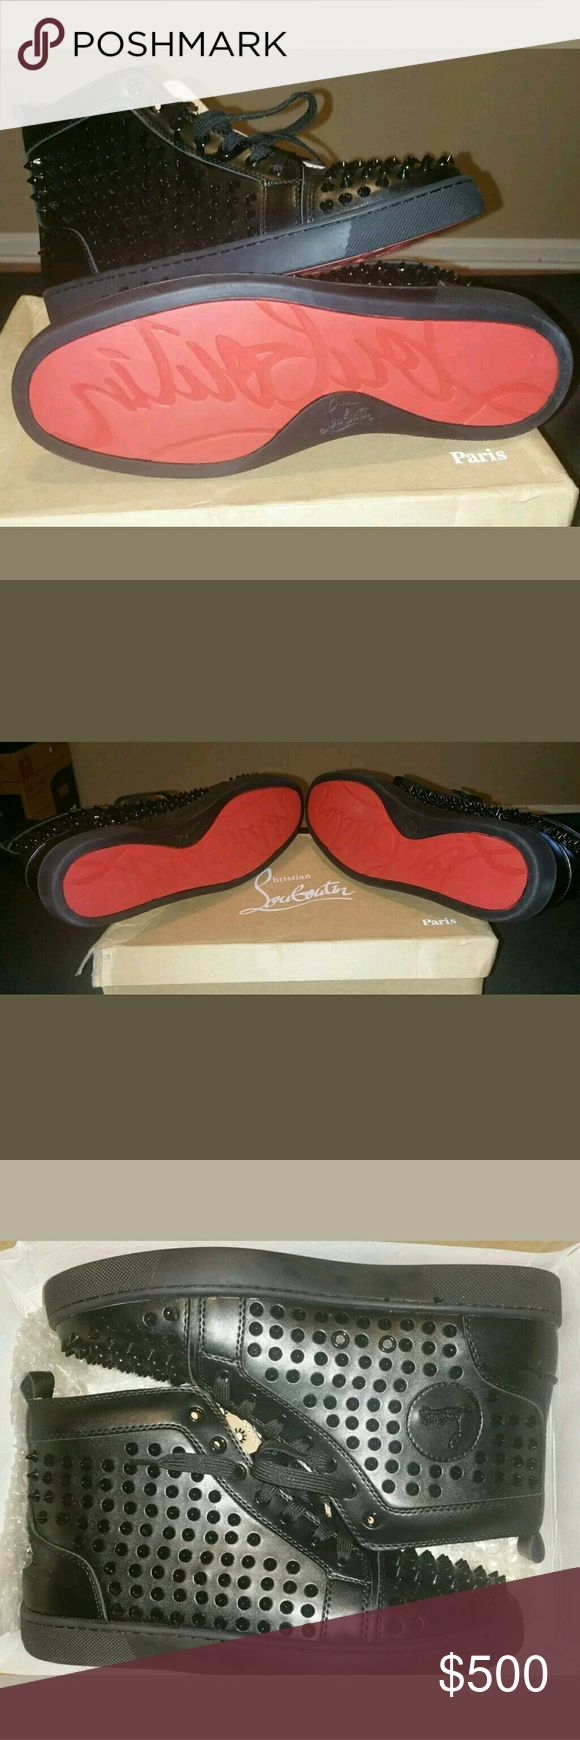 Christian Louboutin Red Bottom shoes Men Casual Spike Black Red Bottom shoes Christian Louboutin Shoes Sneakers